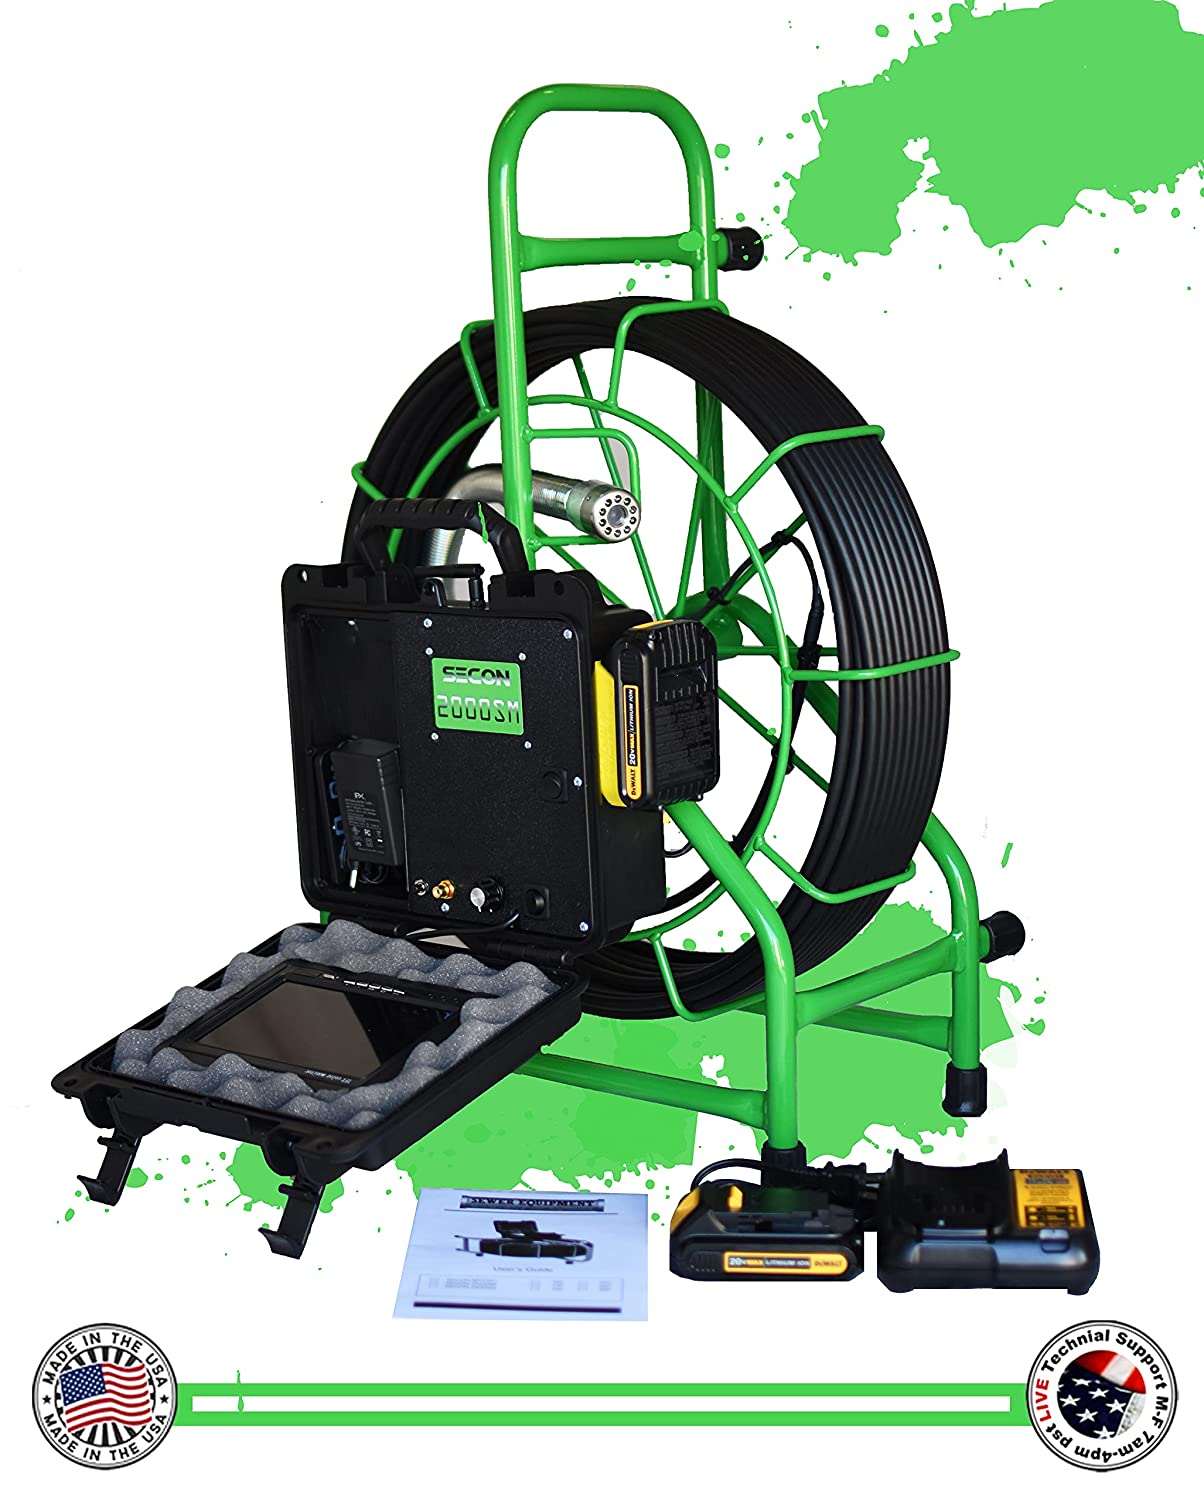 SECON-Extreme 150' Mainline Cordless Color Made Sewer in Camera Bombing new All stores are sold work